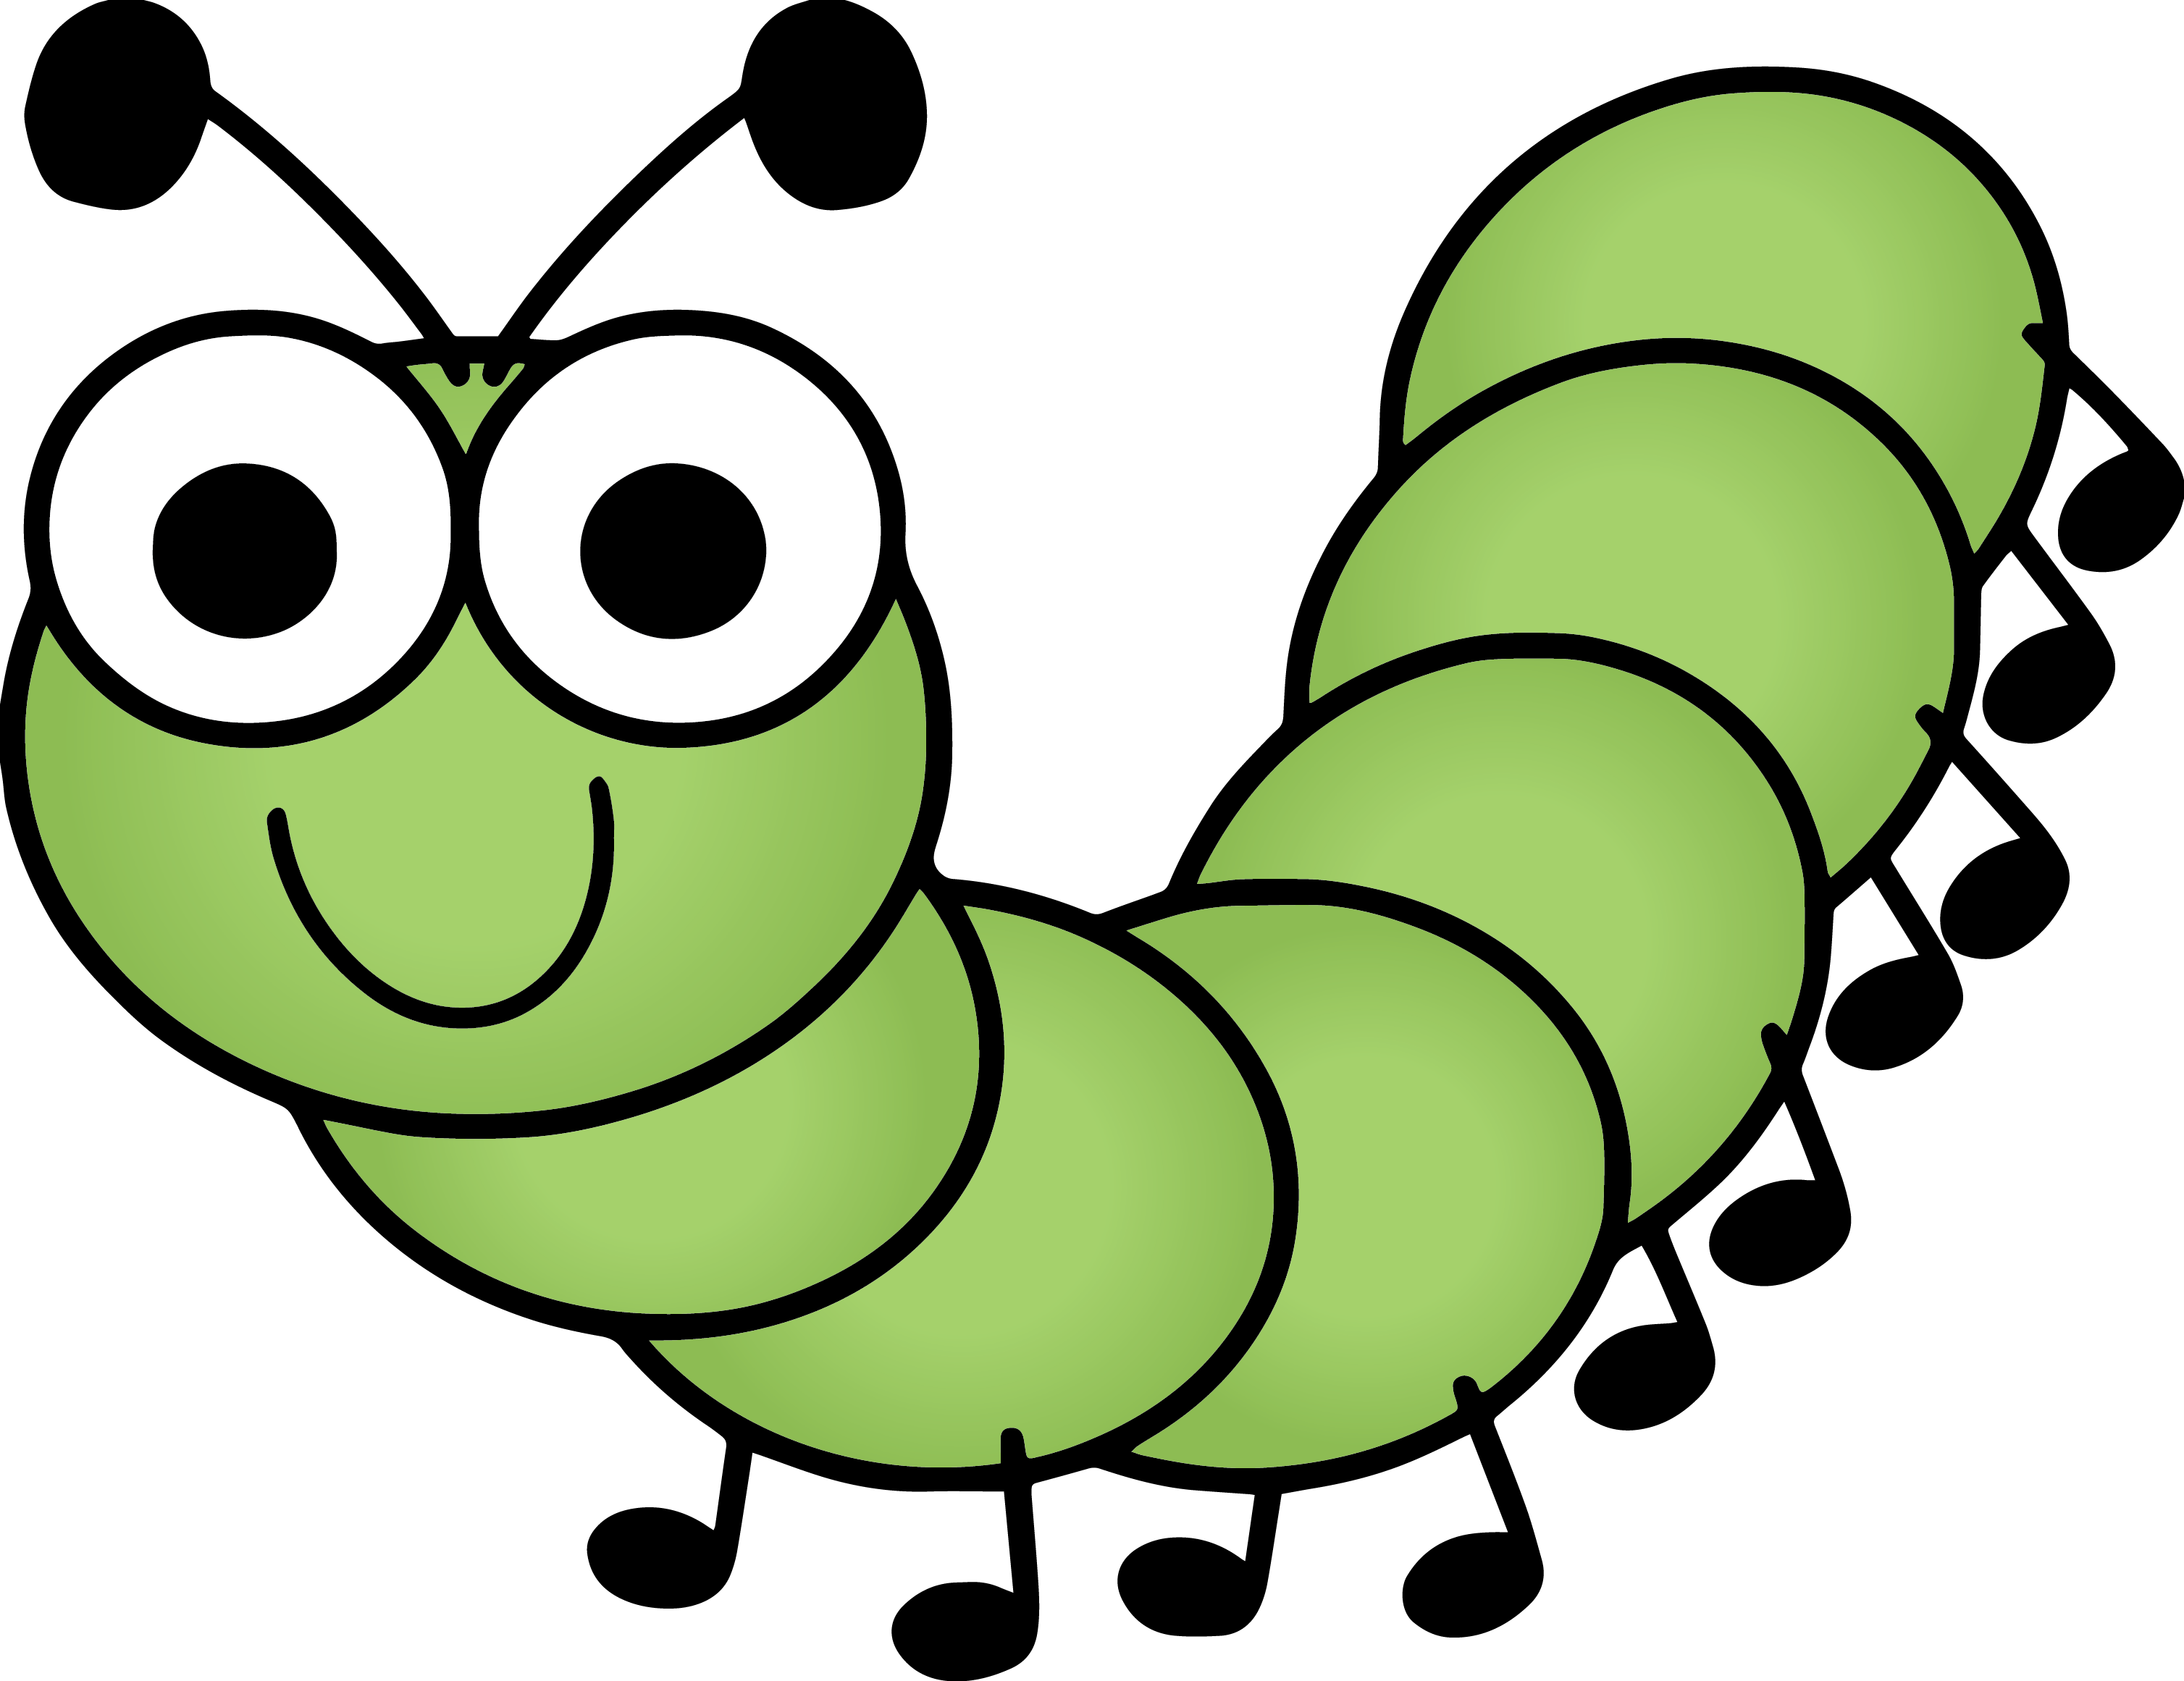 Caterpillar logo png transparent. Insects images free download